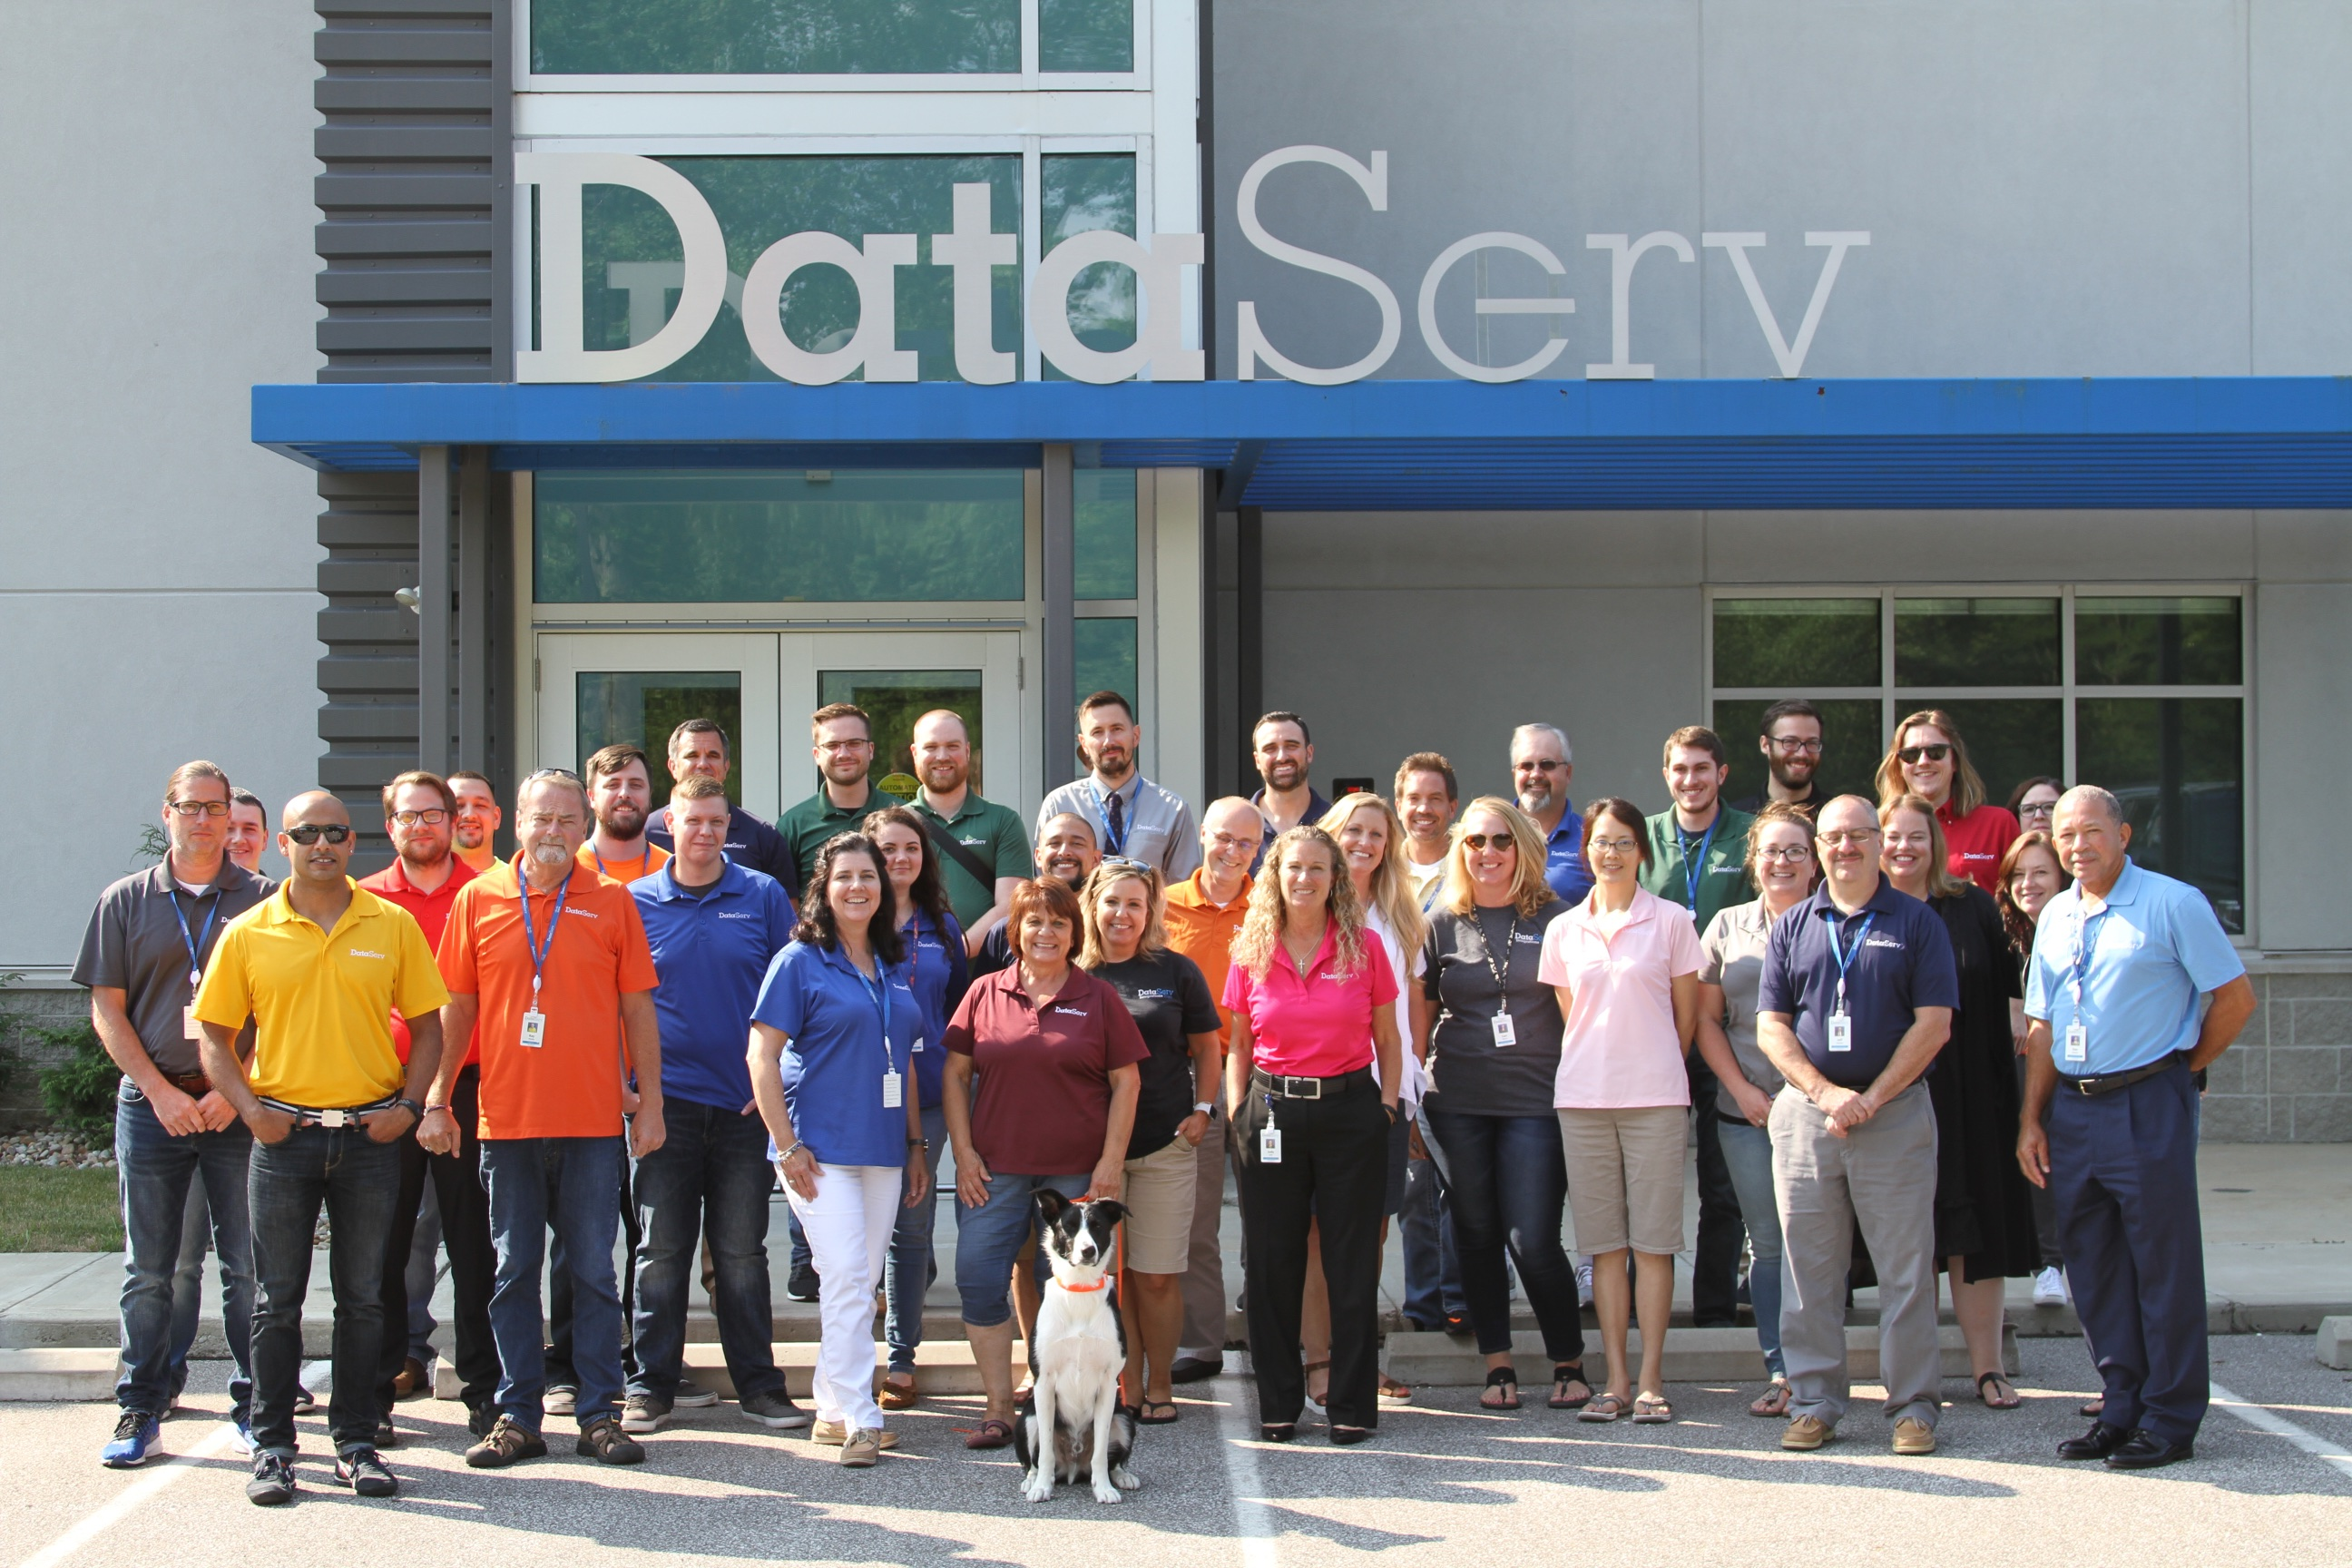 DataServ Team for IT Managed Services